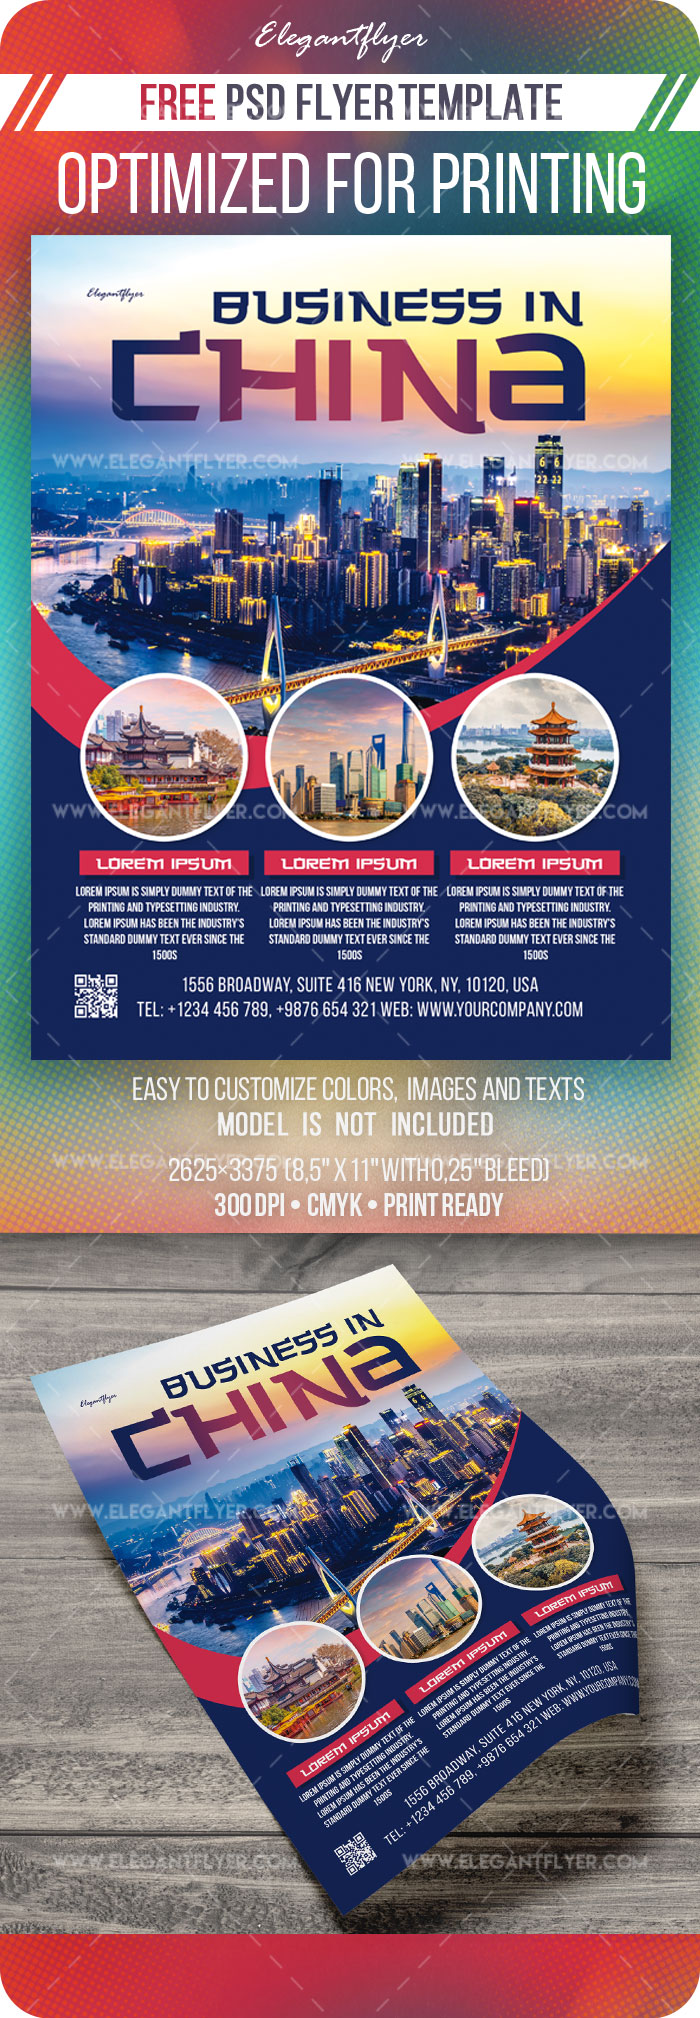 Business in China – Free Flyer Template in PSD